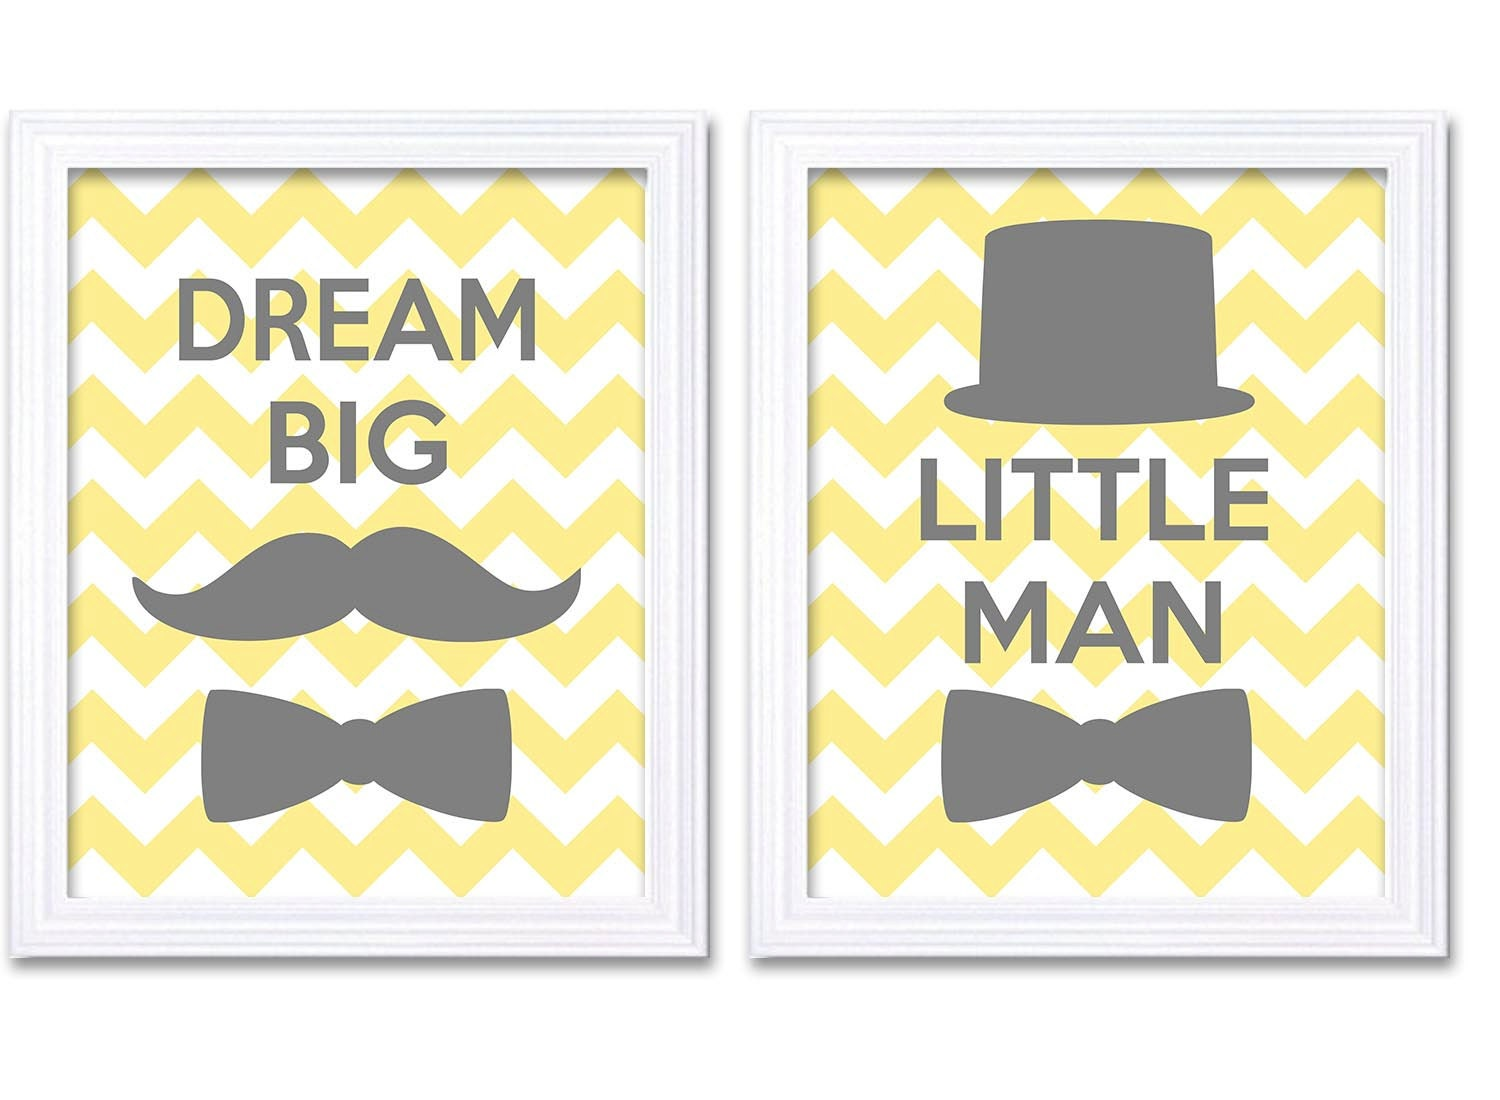 Dream Big Little Man Nursery Art Yellow Grey Nursery Print Set of 2 Tophat Bowtie Child Baby Art Pri